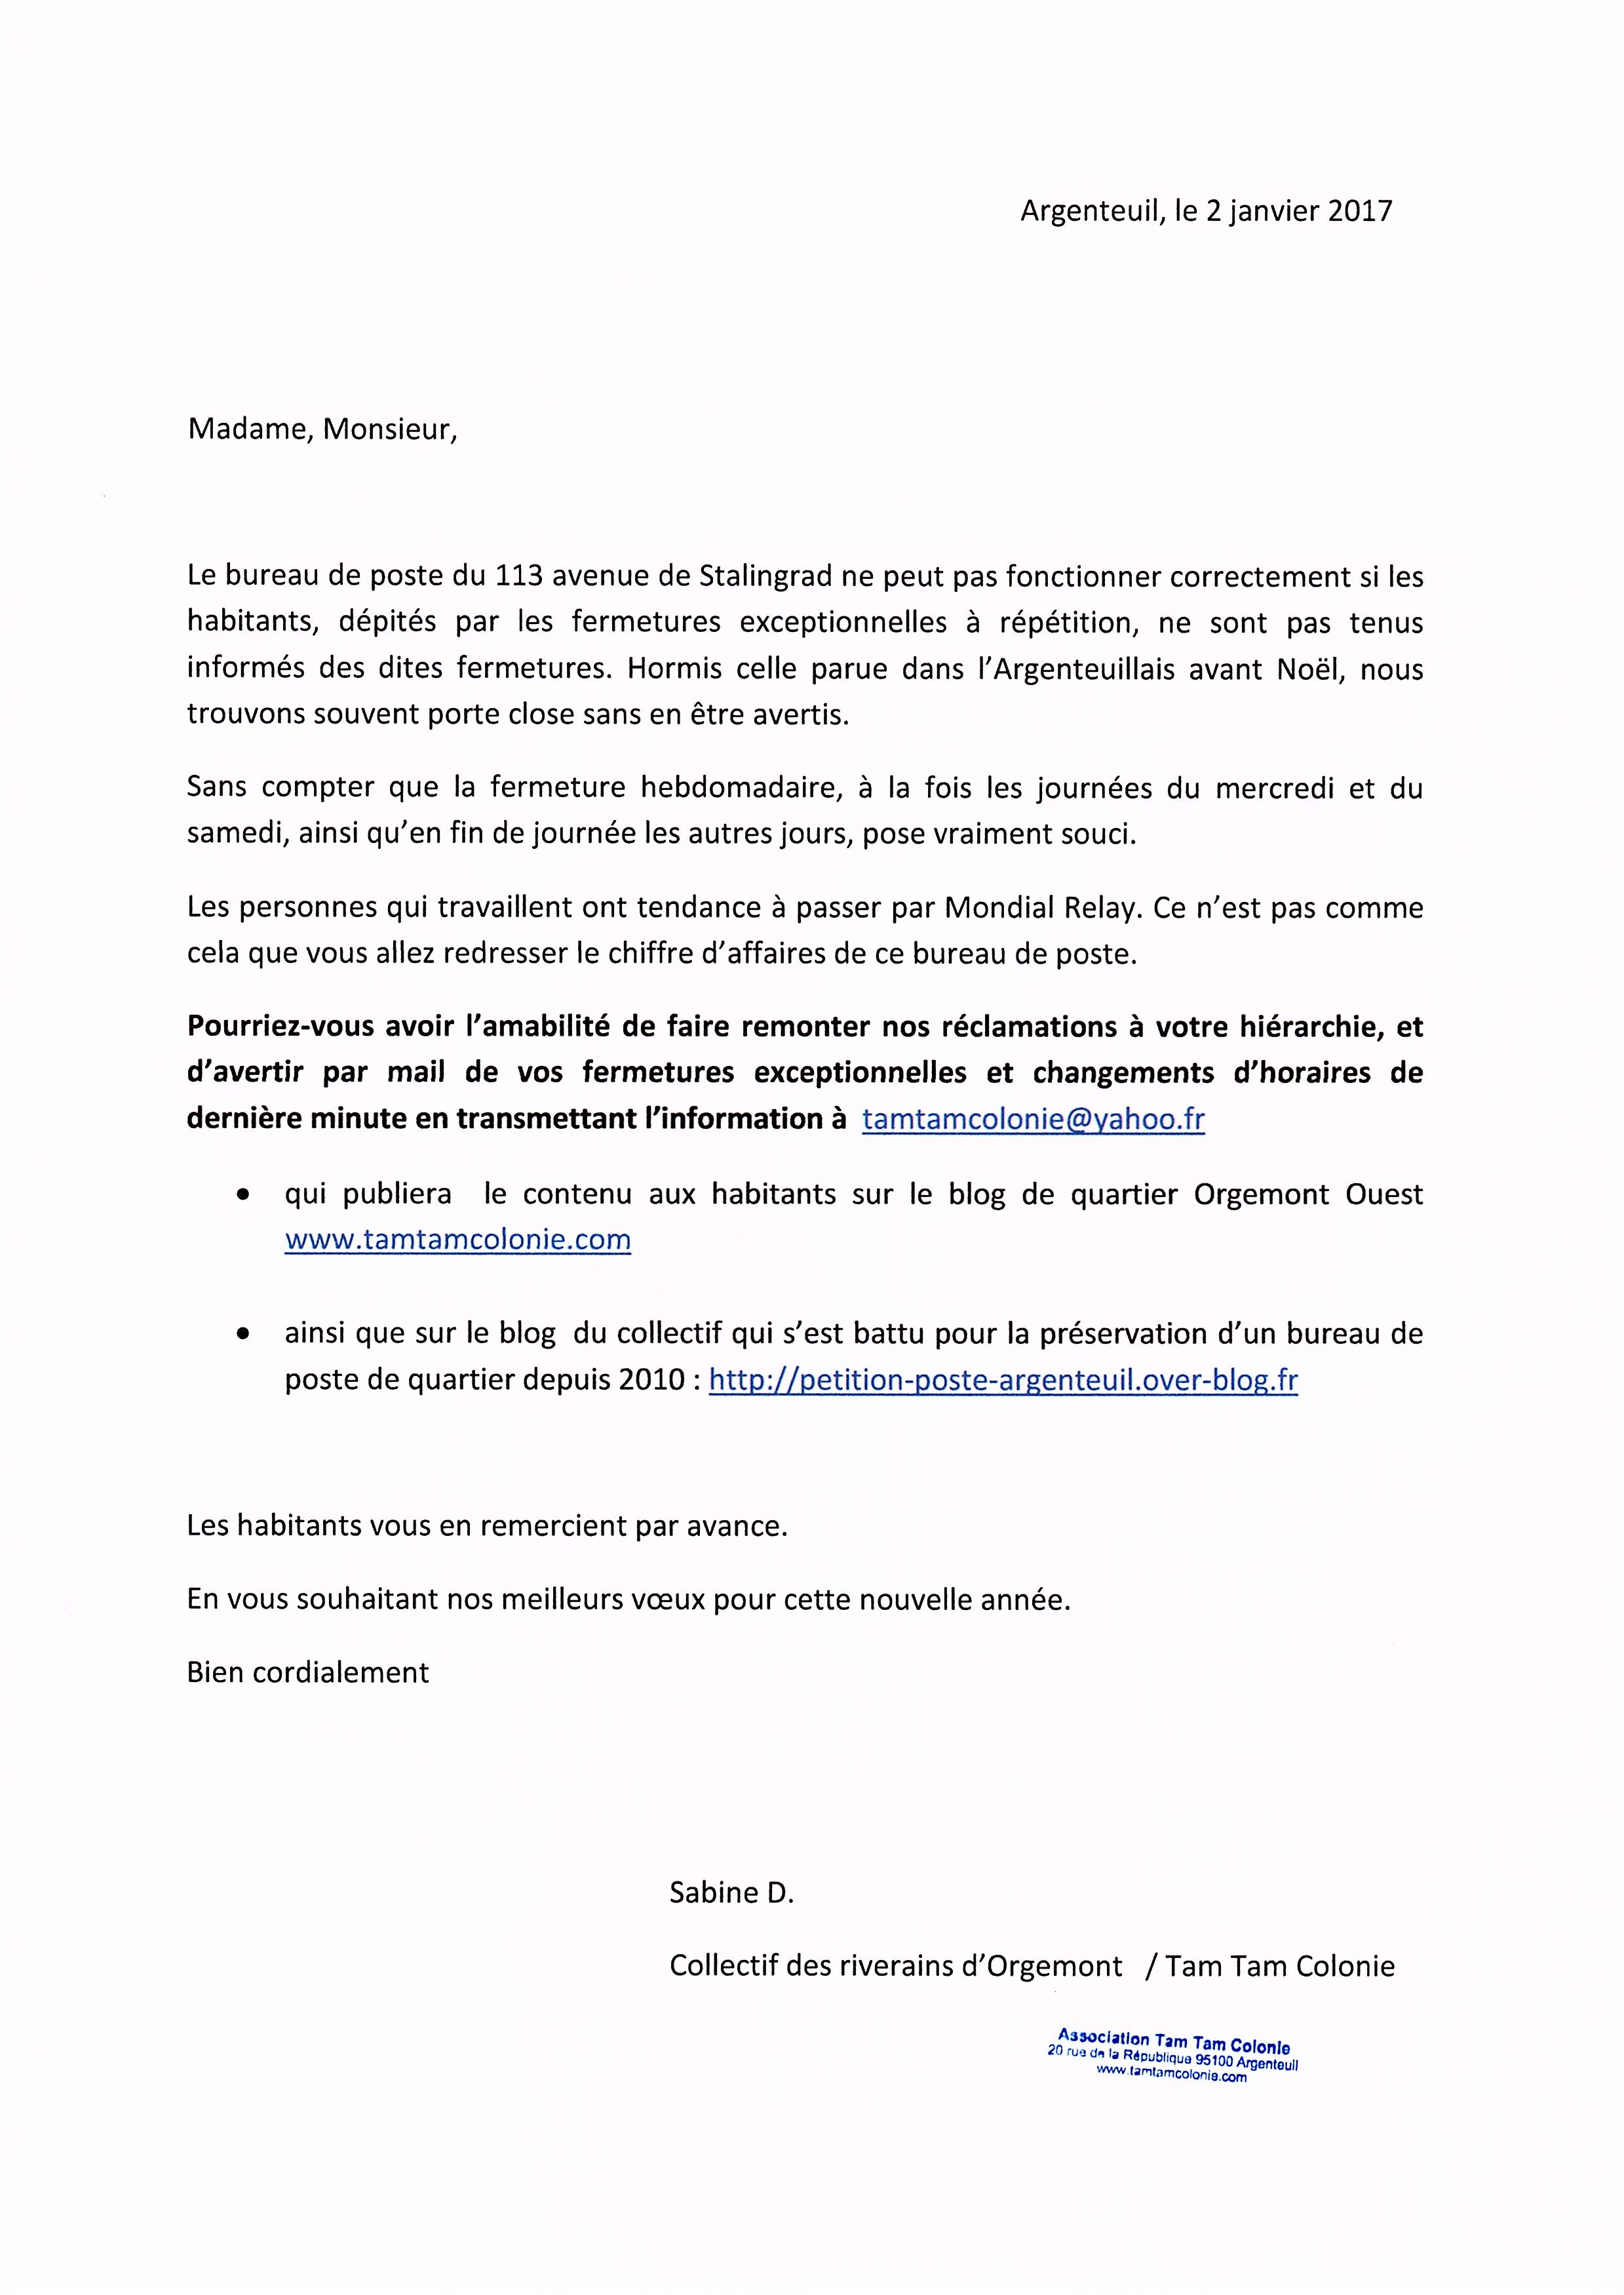 Courrier remis la poste et au maire le blog du collectif riverains argent - Reclamation reexpedition courrier ...